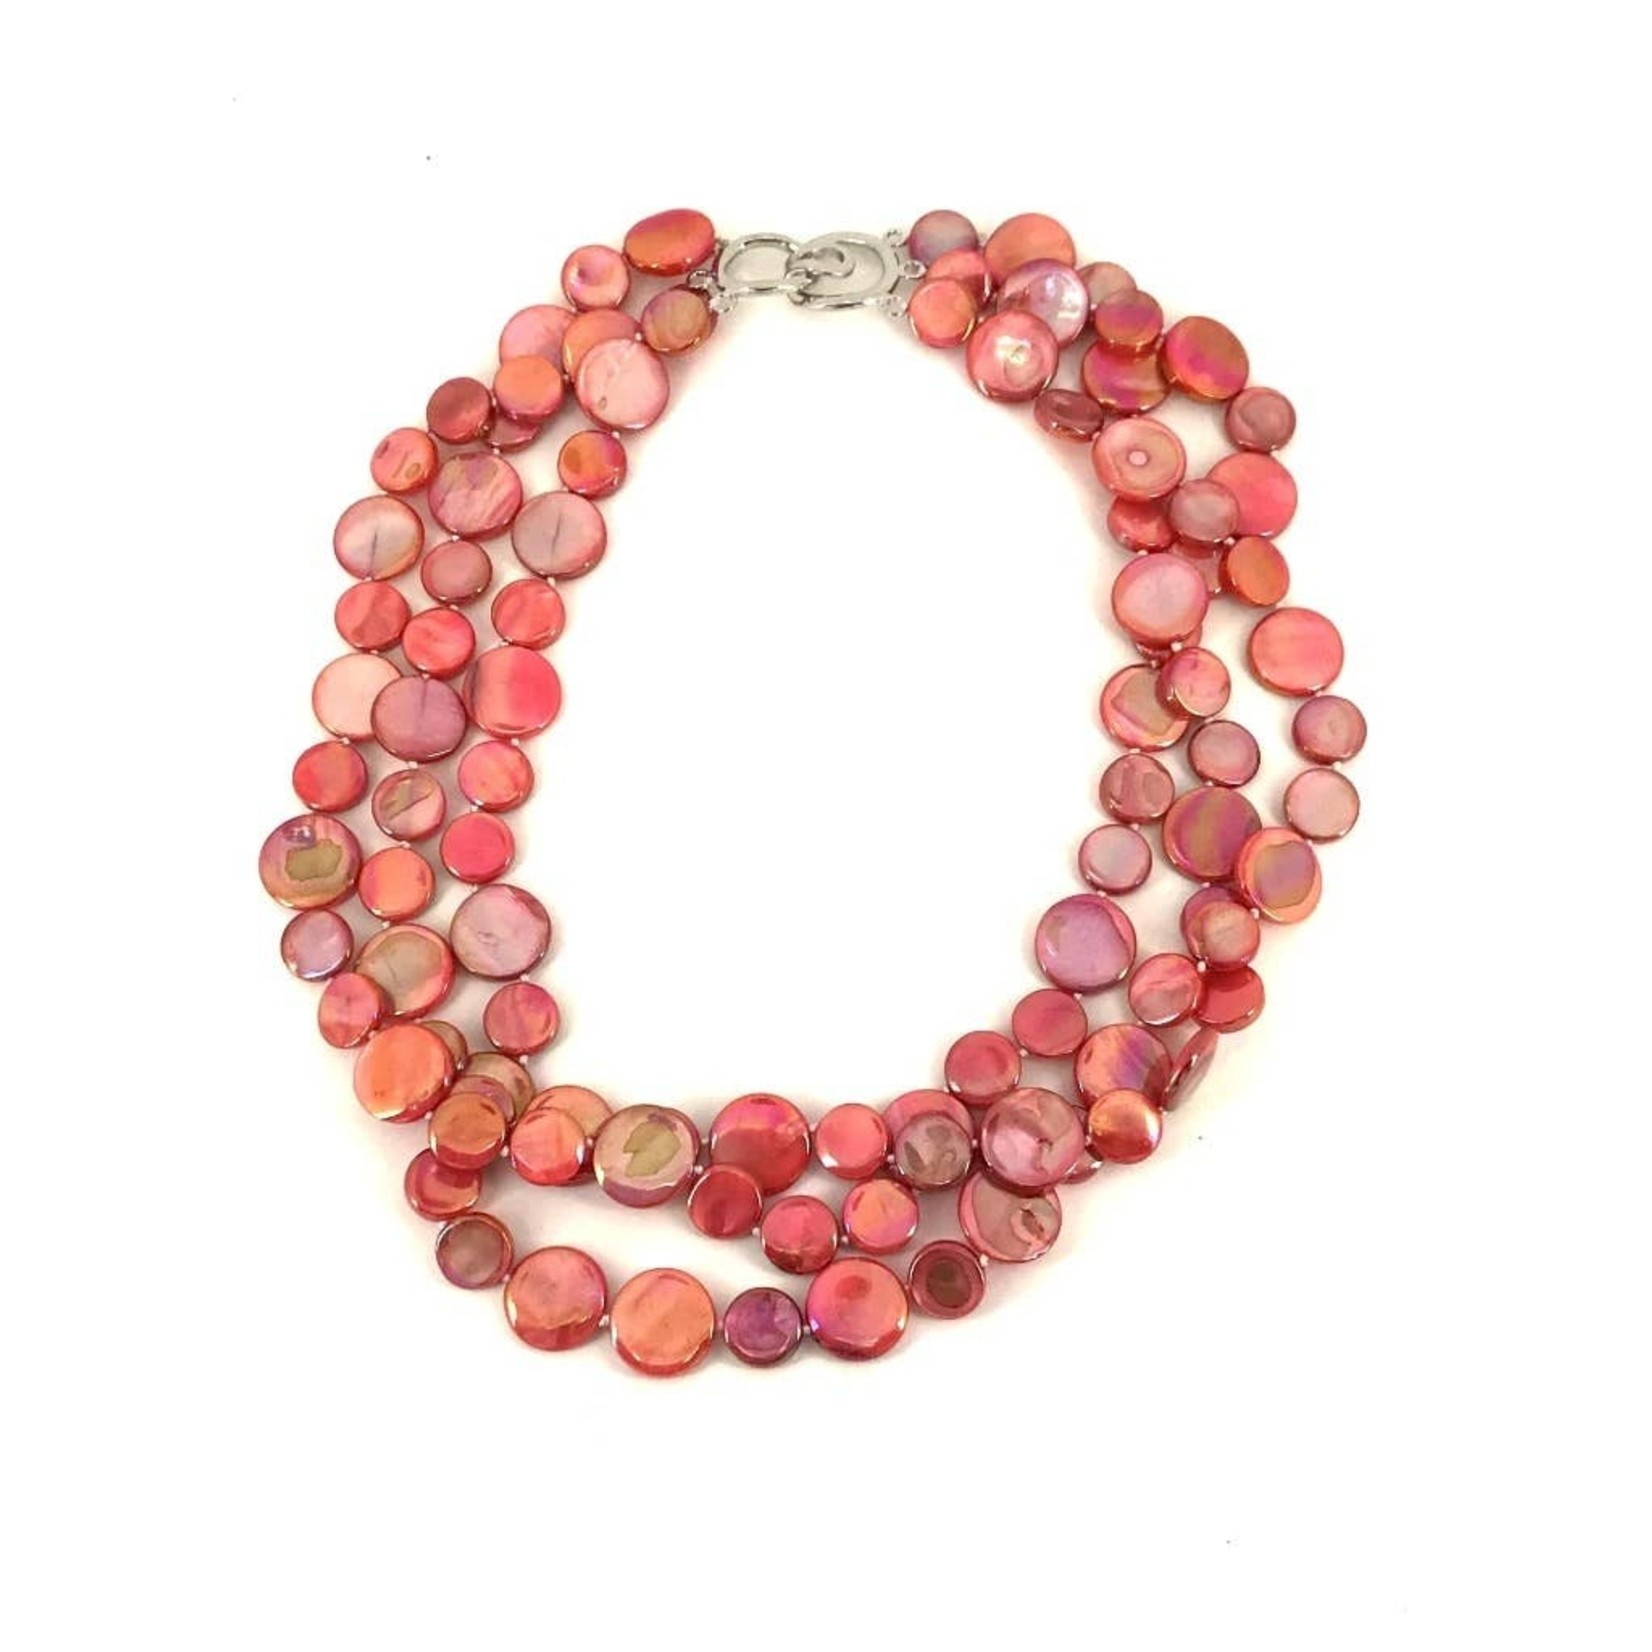 Sea Lily Coral 3 Strand Mother of Pearl Necklace